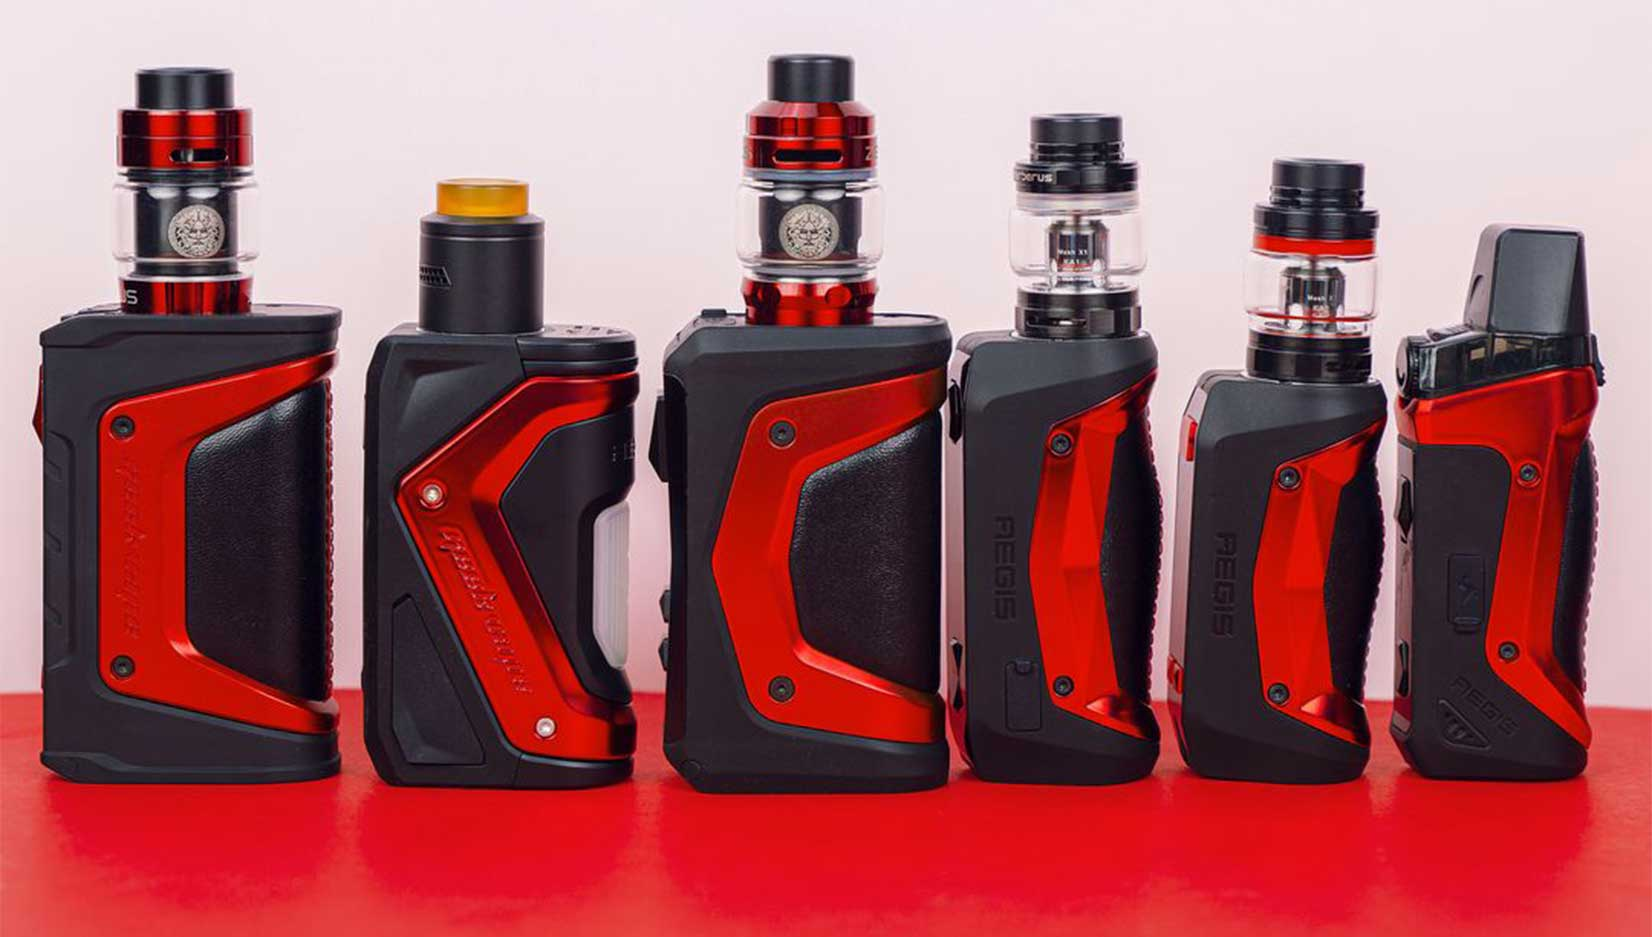 Selecting you first vape, What should you be considering?